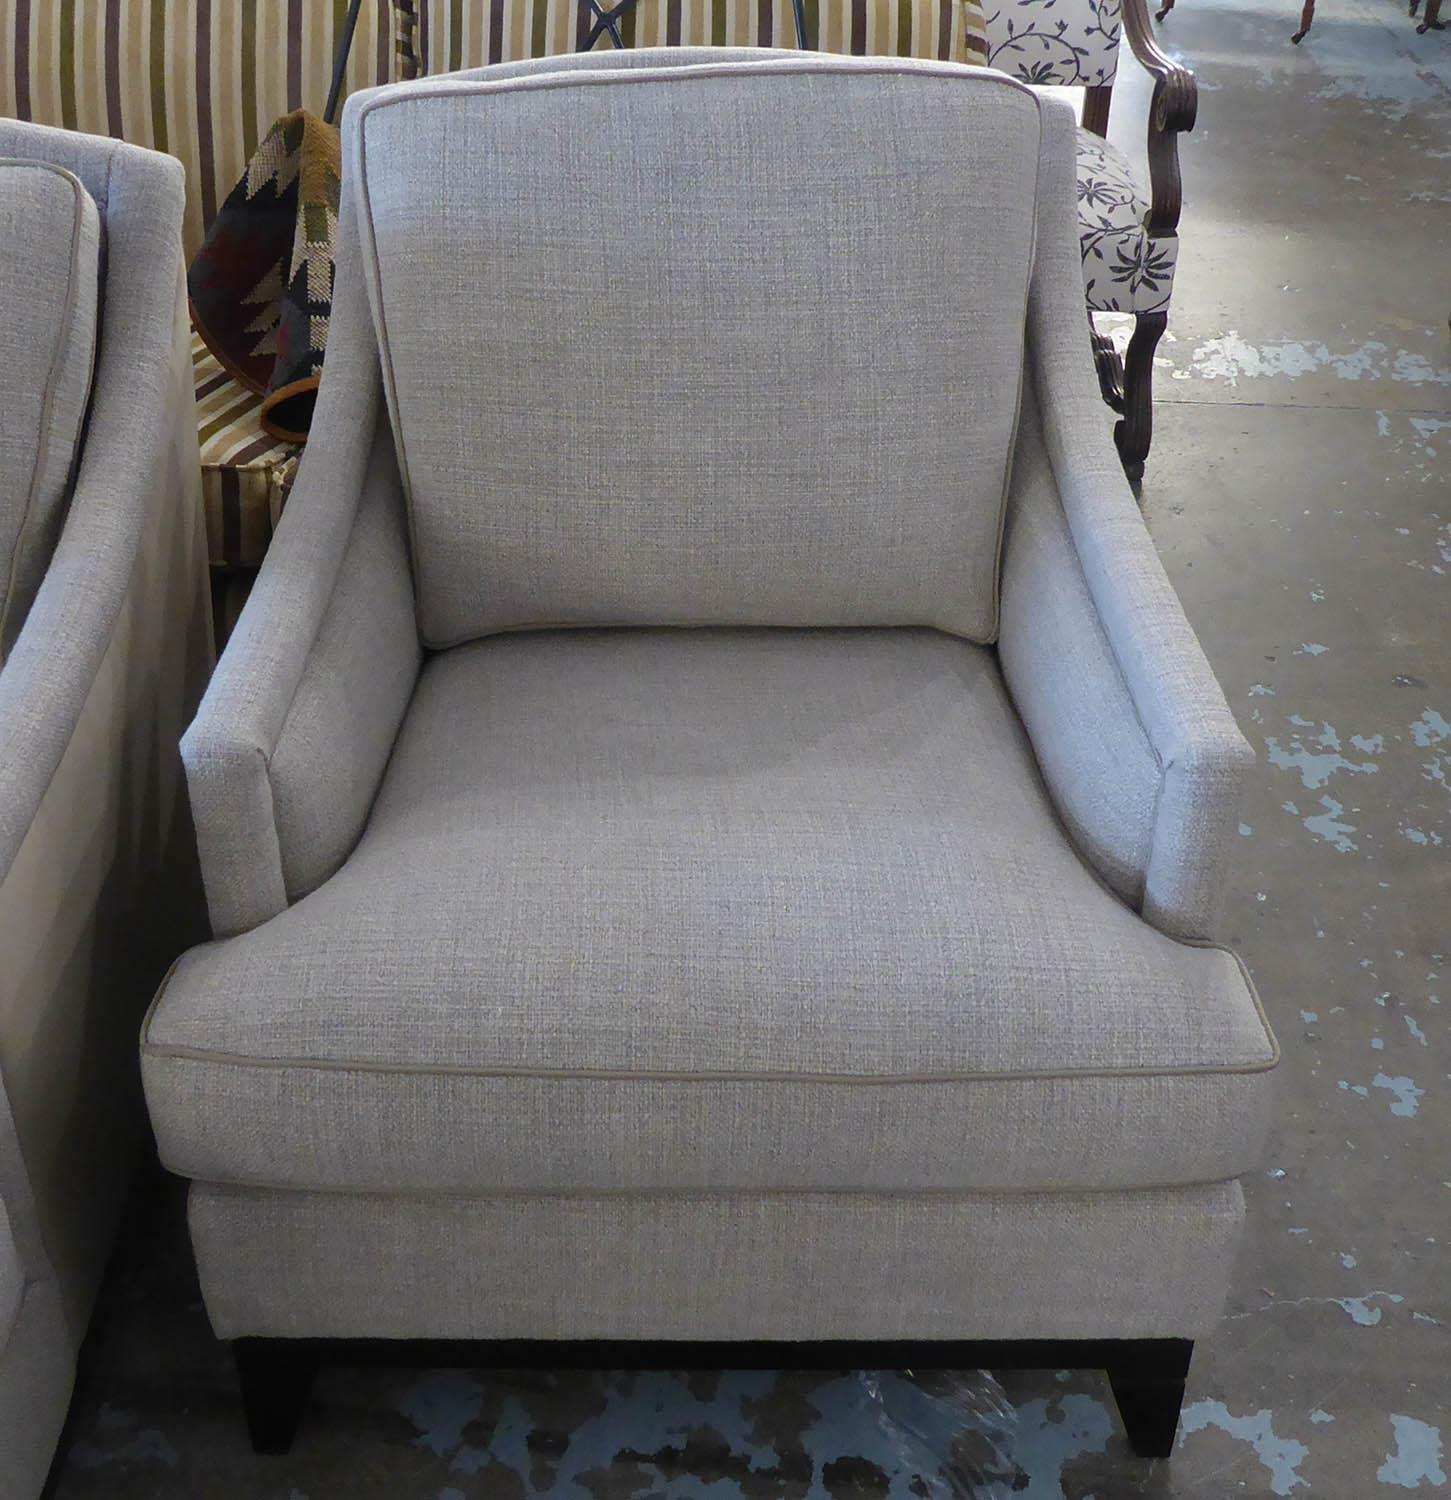 BESPOKE SOFA LONDON ARMCHAIRS, a pair, 76cm approx. (2) - Image 2 of 4